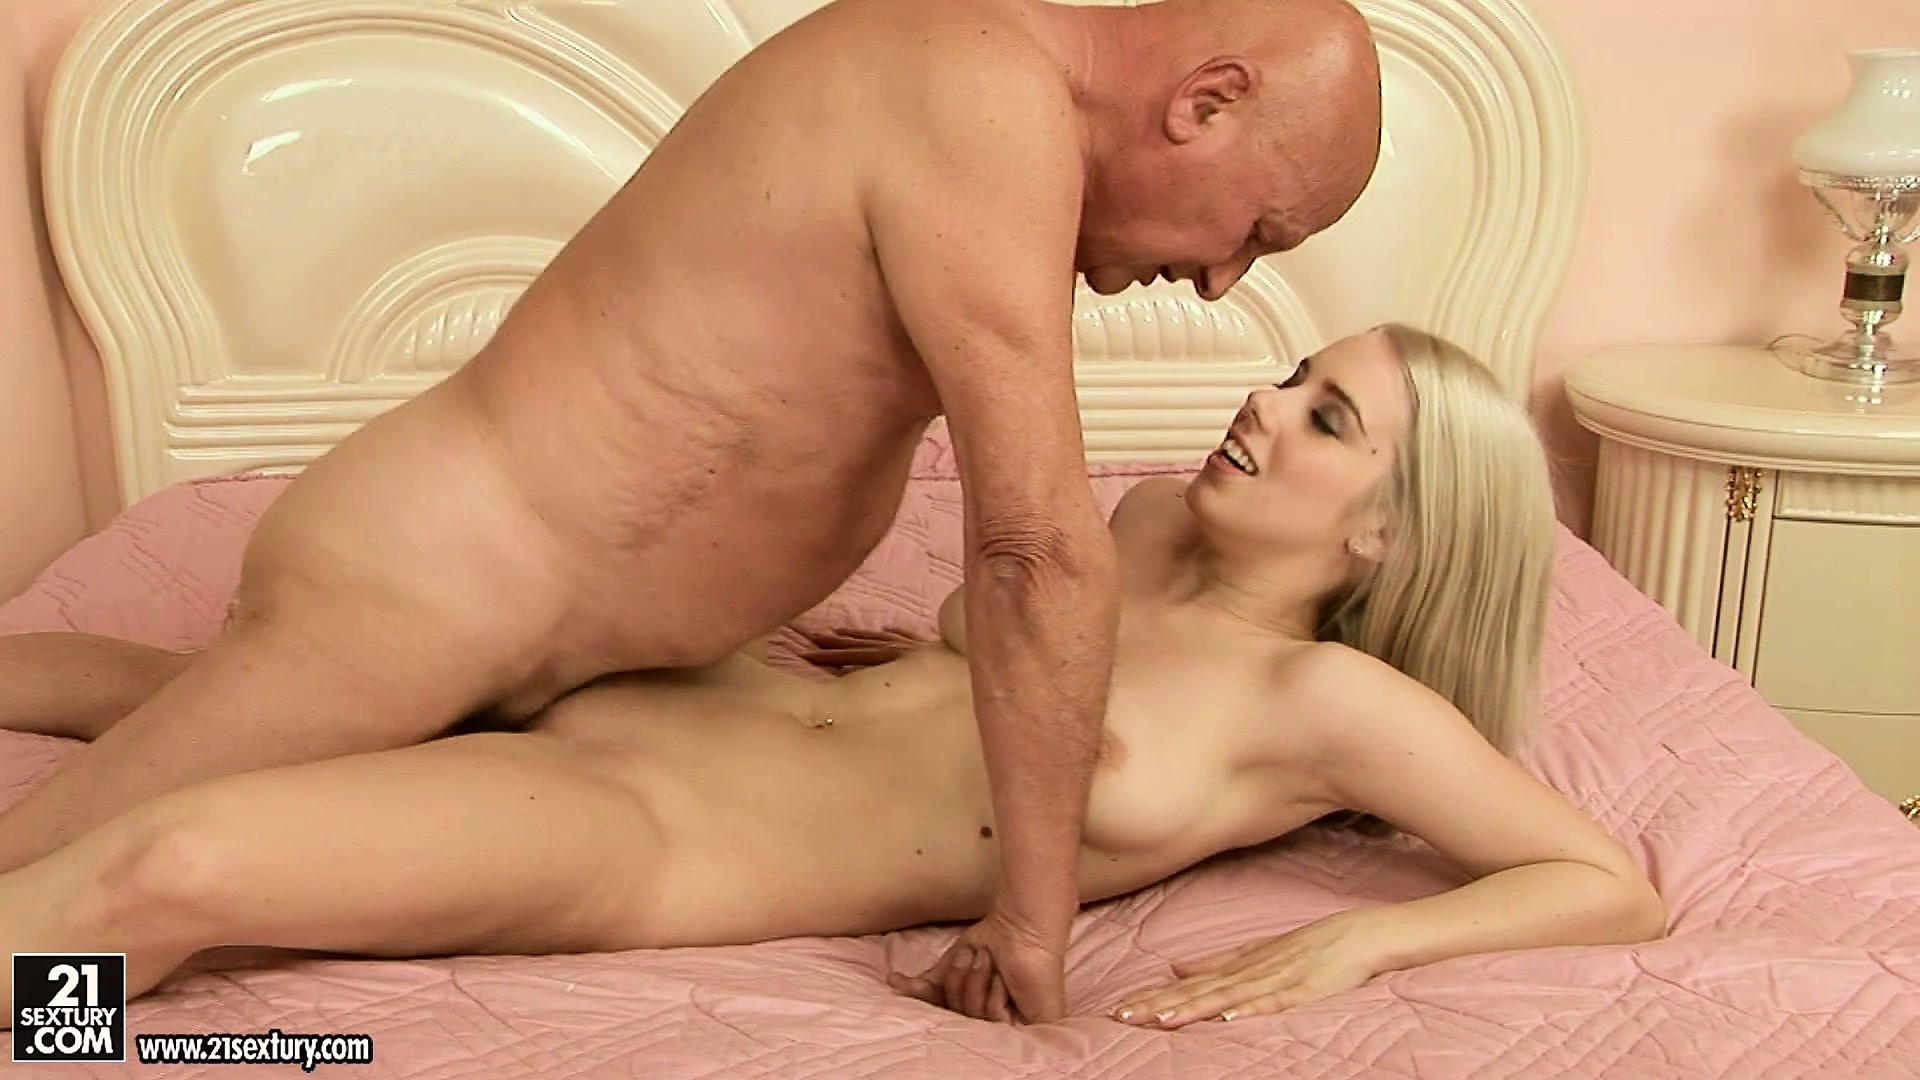 Big booty girl riding cock